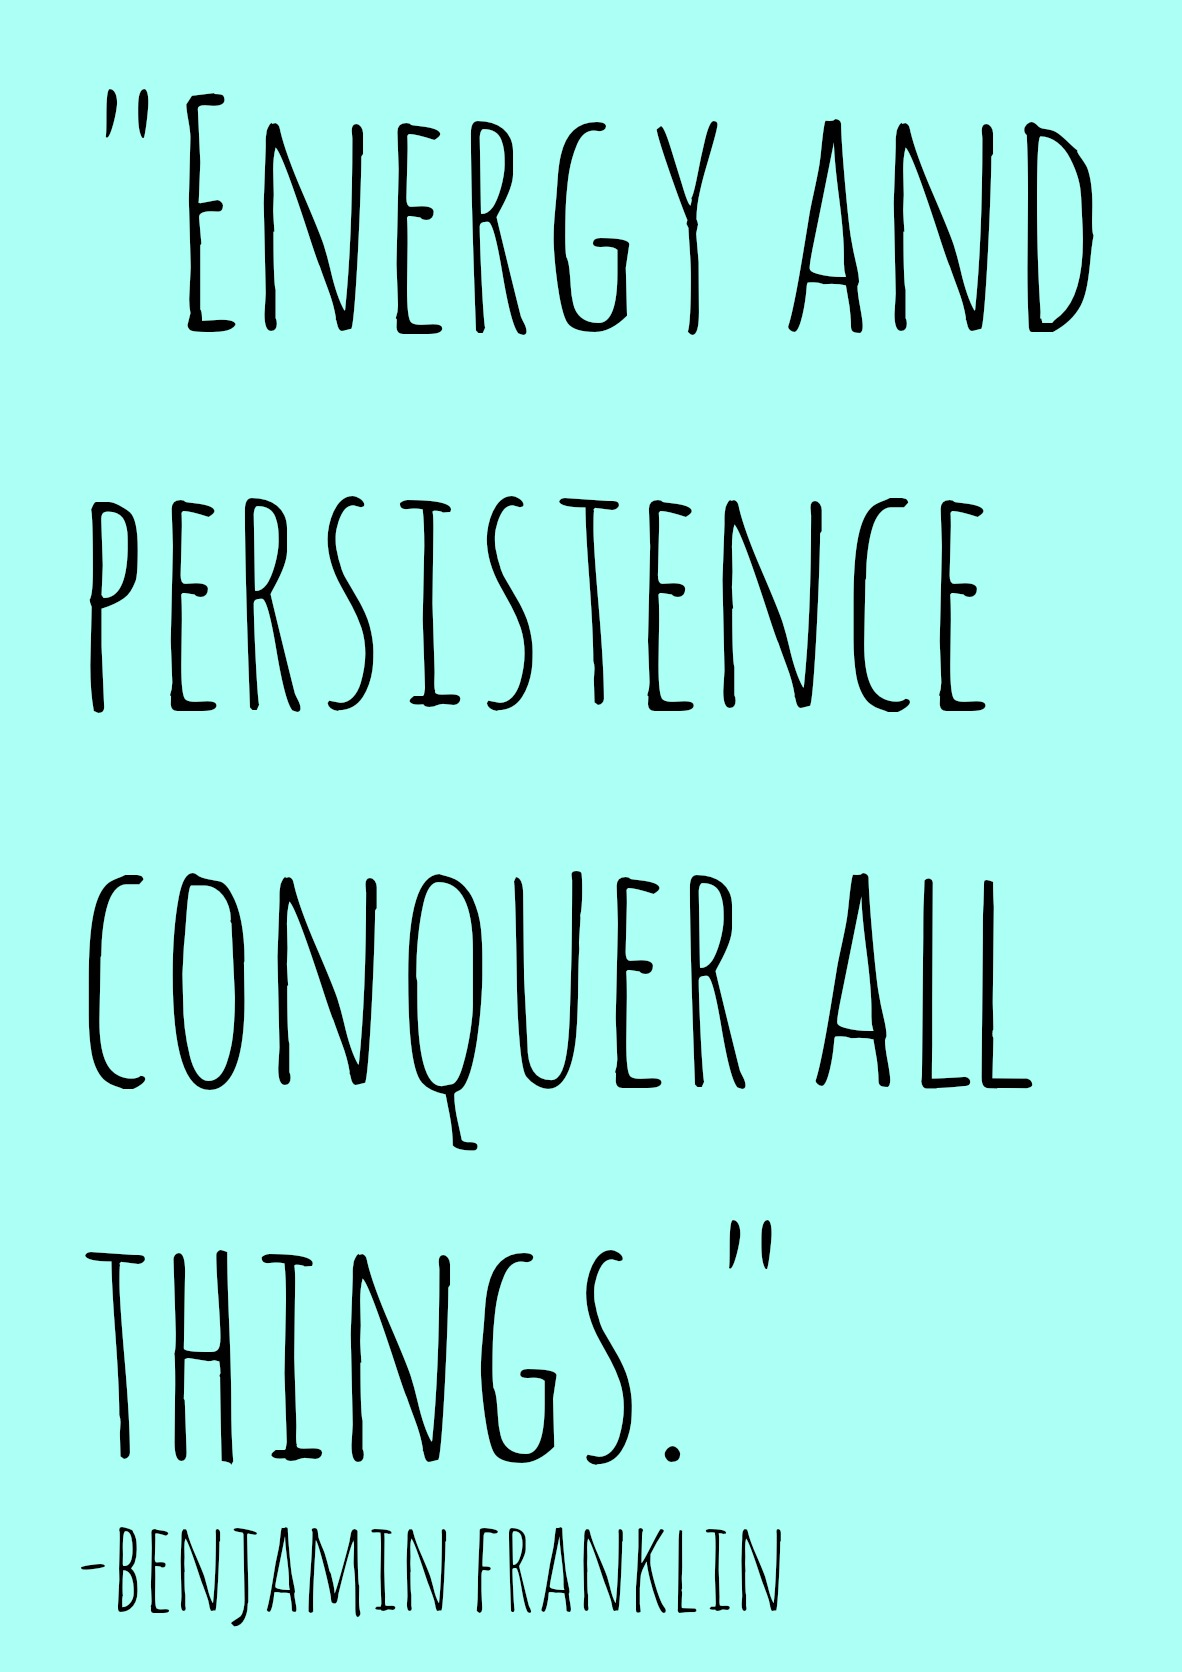 friday fitness quotes quotesgram